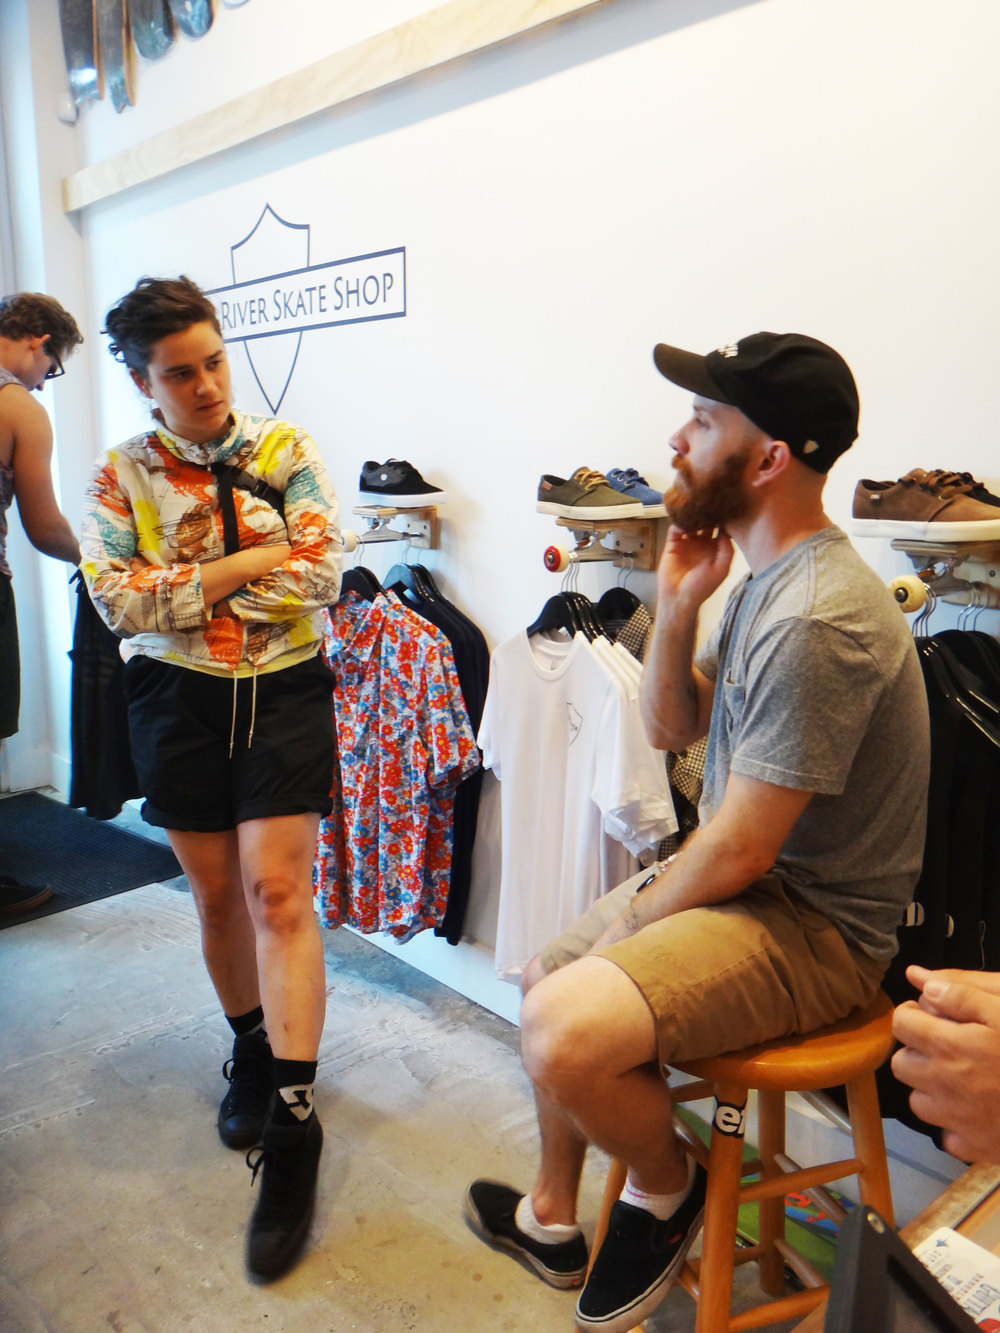 Colleen Pelech and Richard Oates,East River Skateshop Grand Opening, August 1st, 2015. Photo by Corinne Séguin.